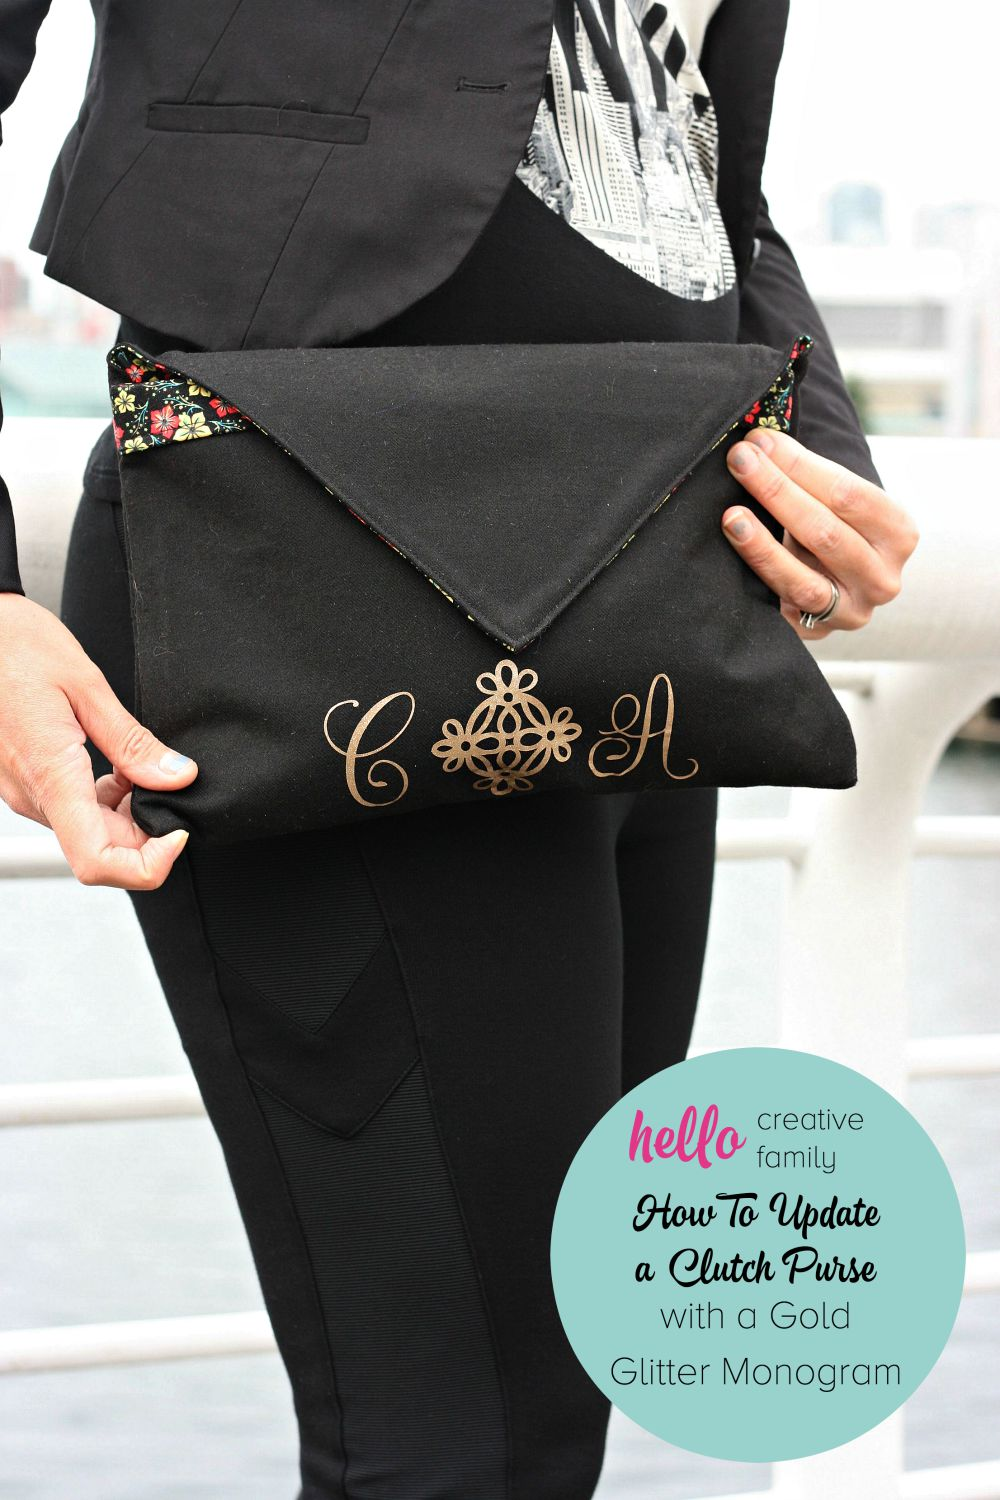 In celebration of the release of Cricut's Gold Edition, Hello Creative Family shares how to update a clutch purse with a gold glitter monogram 2